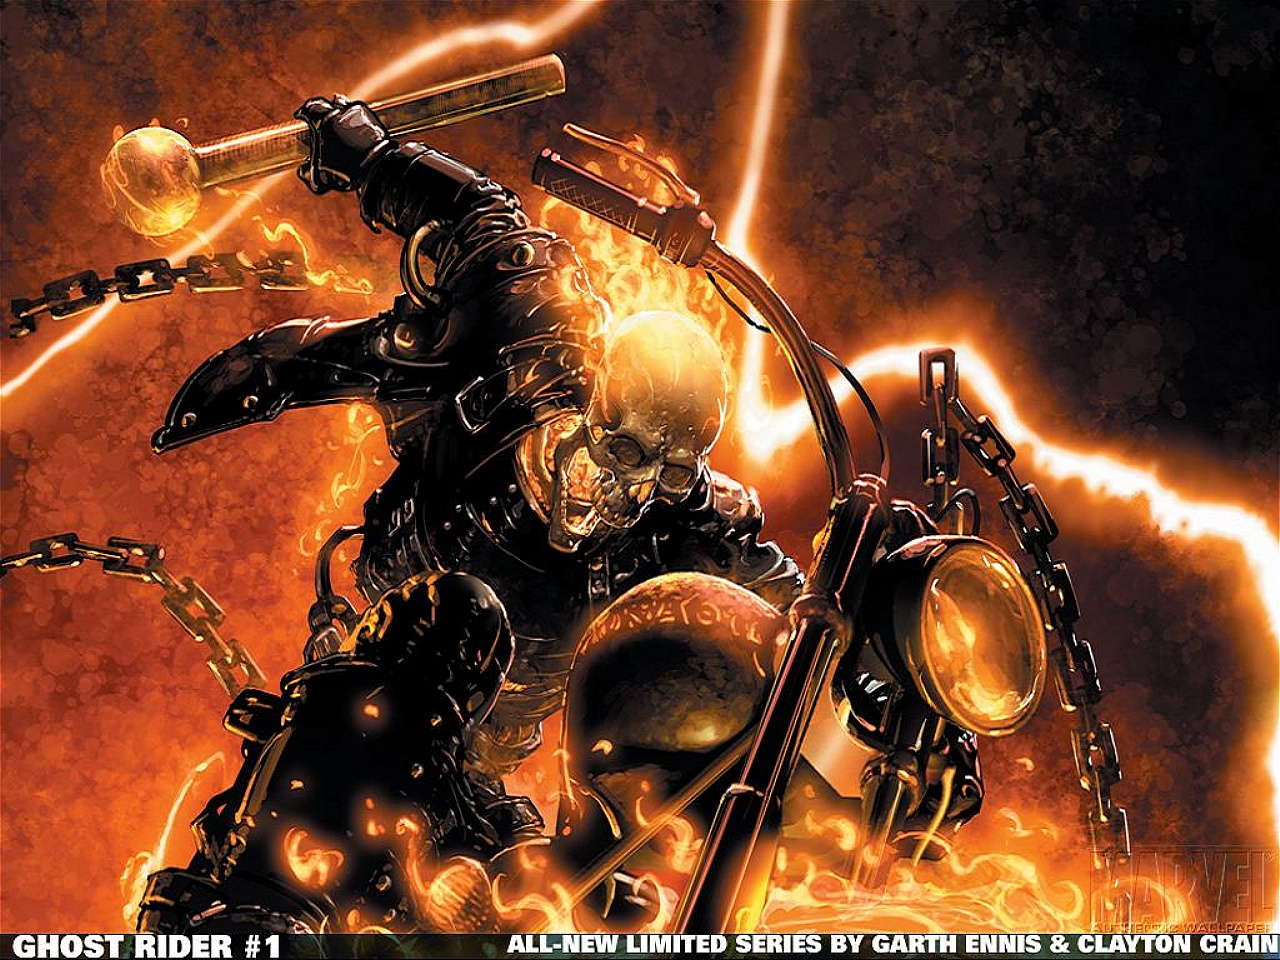 http://www.comicwallpaper.net/images/wallpapers/The%20Ghost%20Rider-258681.jpeg